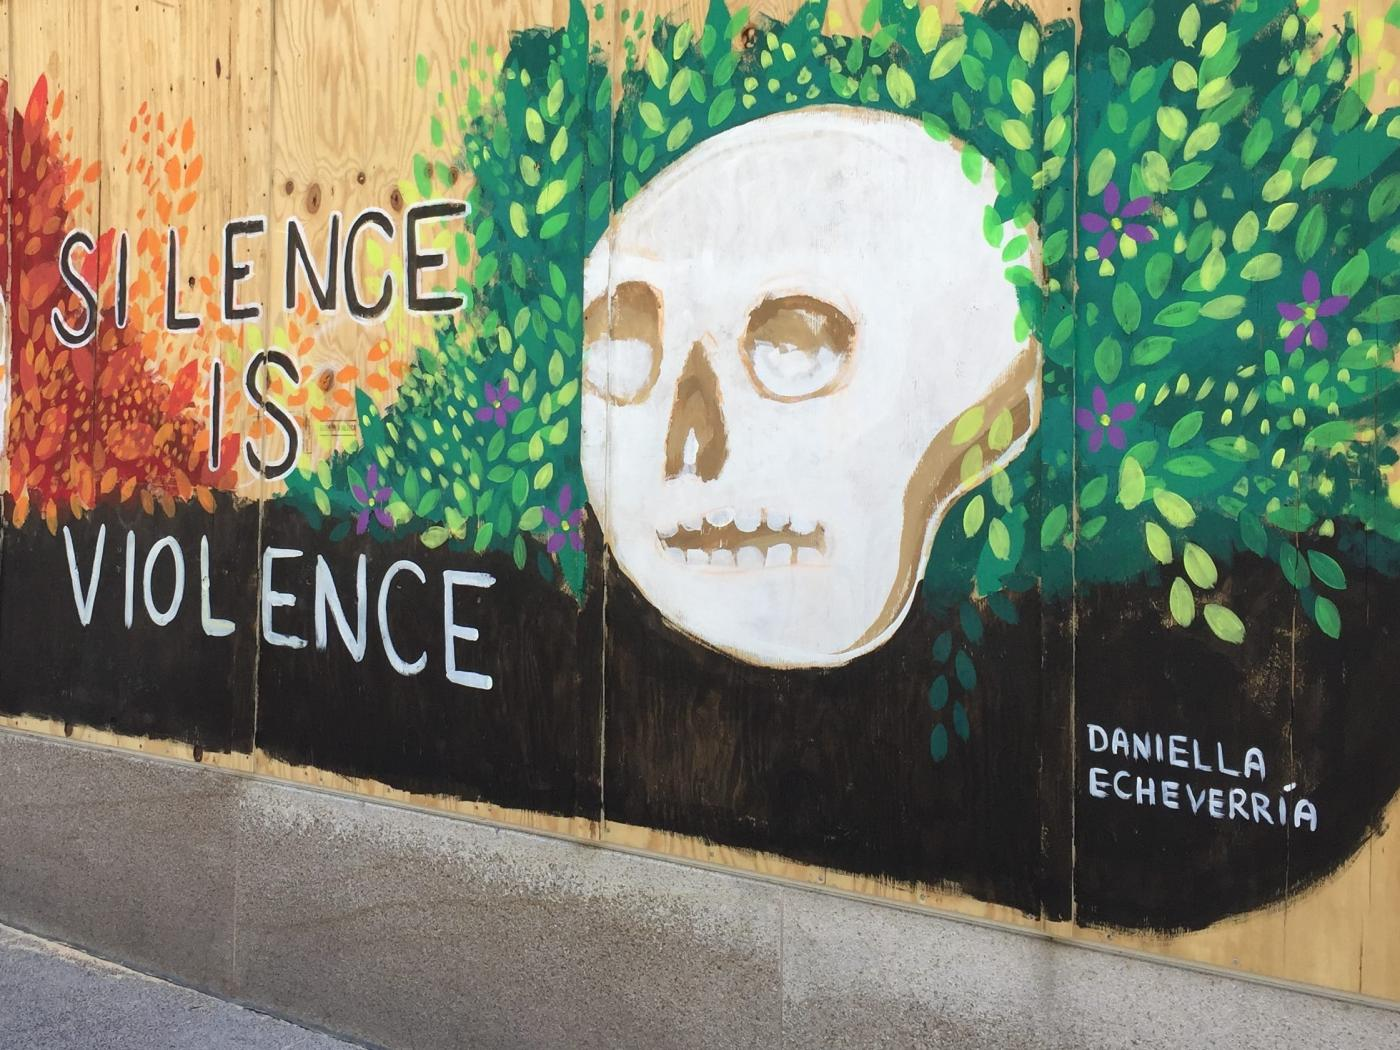 Artwork carrying messages of peace as seen in this mural in Madison, Wisconsin, by Daniella Echeverria on 7 June (Reuters)